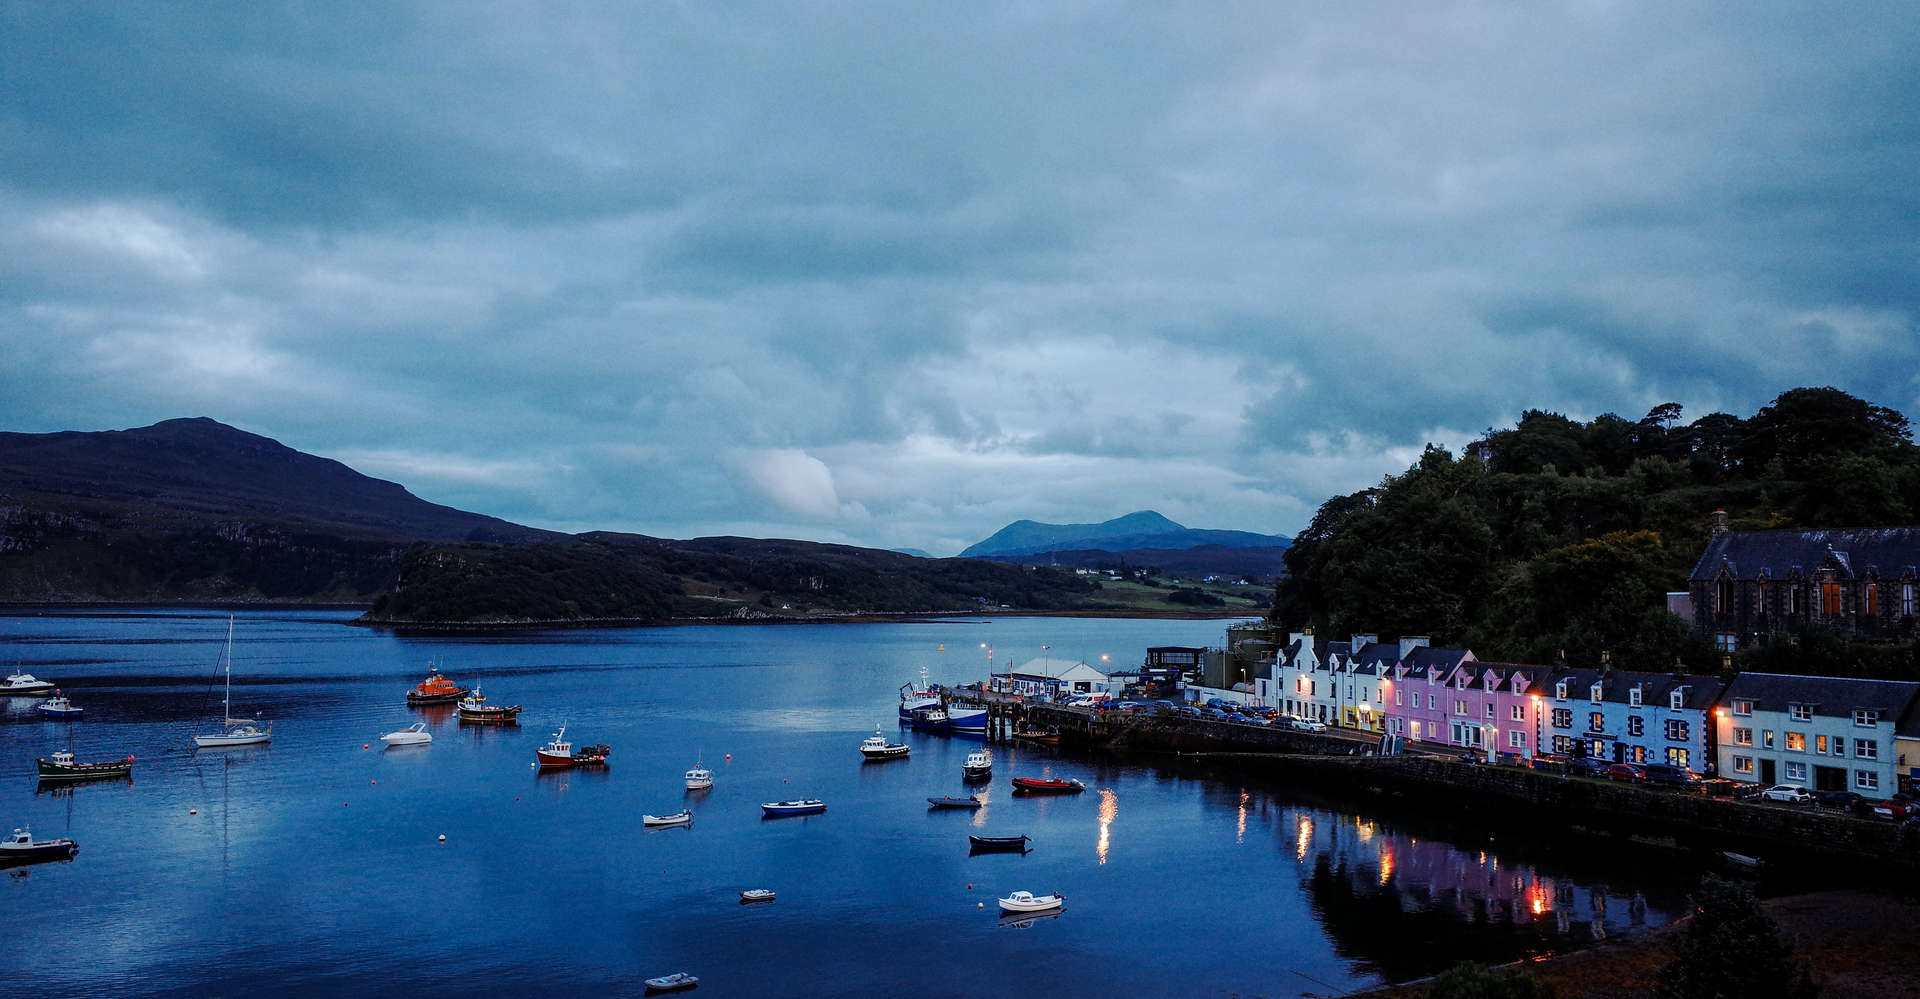 portree on the isle of skye in scotland  at sunset with calm loch and